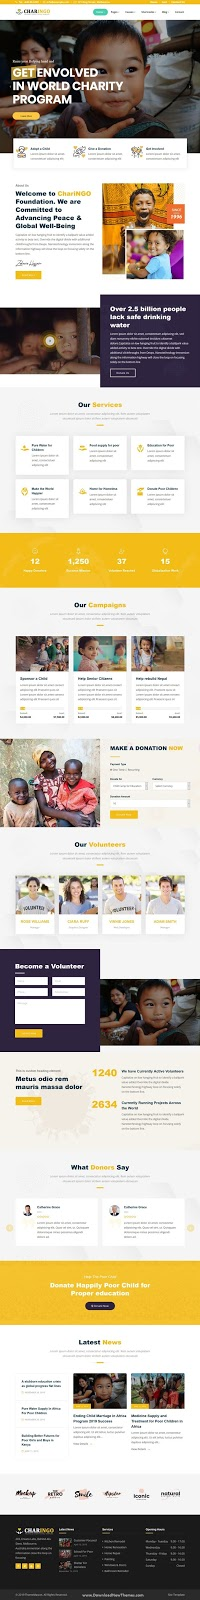 Nonprofit Charity Template